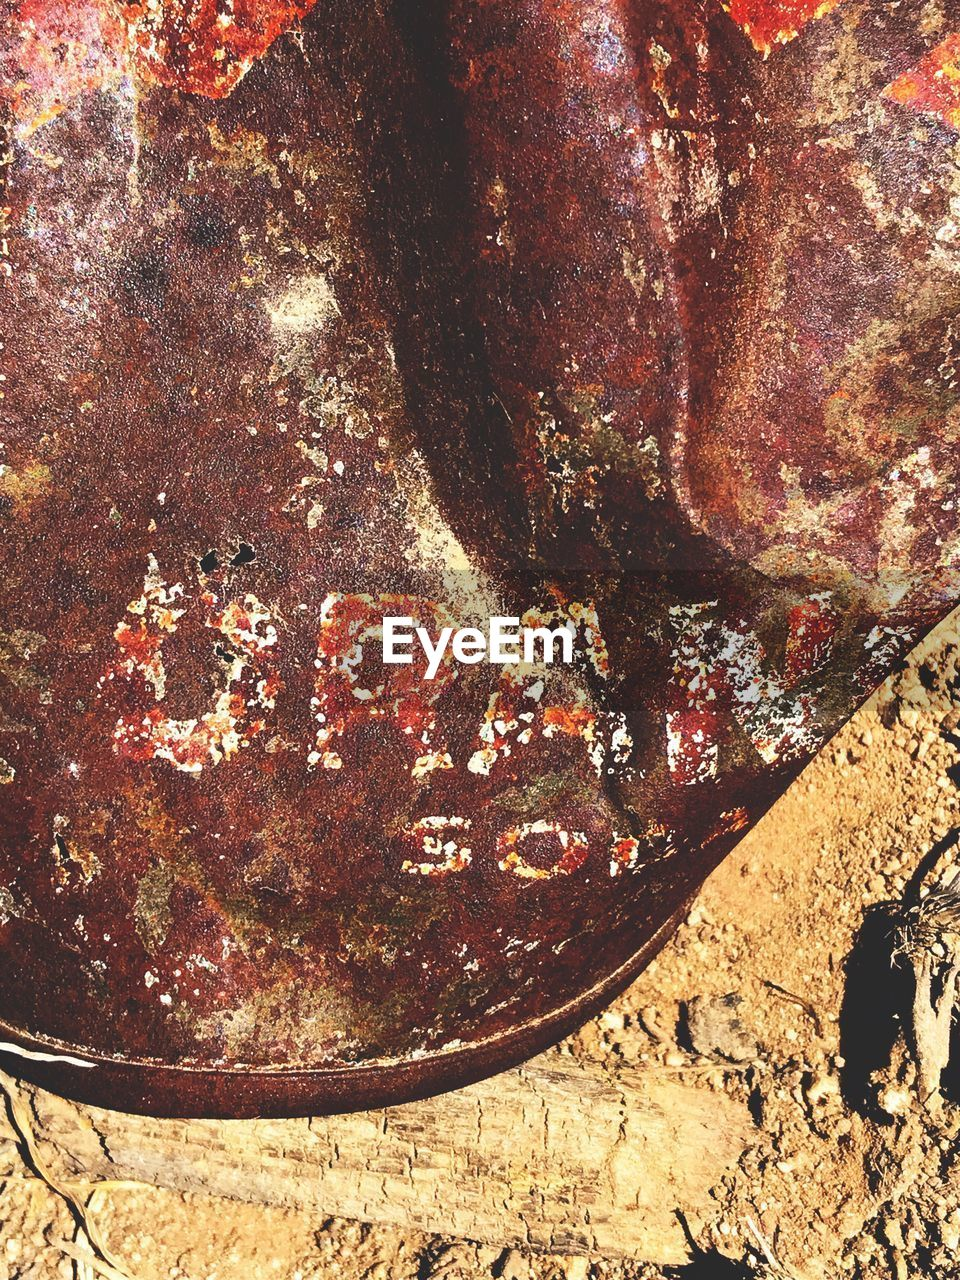 nature, no people, sunlight, day, close-up, high angle view, outdoors, metal, land, field, solid, rusty, old, textured, dirt, weathered, rock, still life, damaged, abandoned